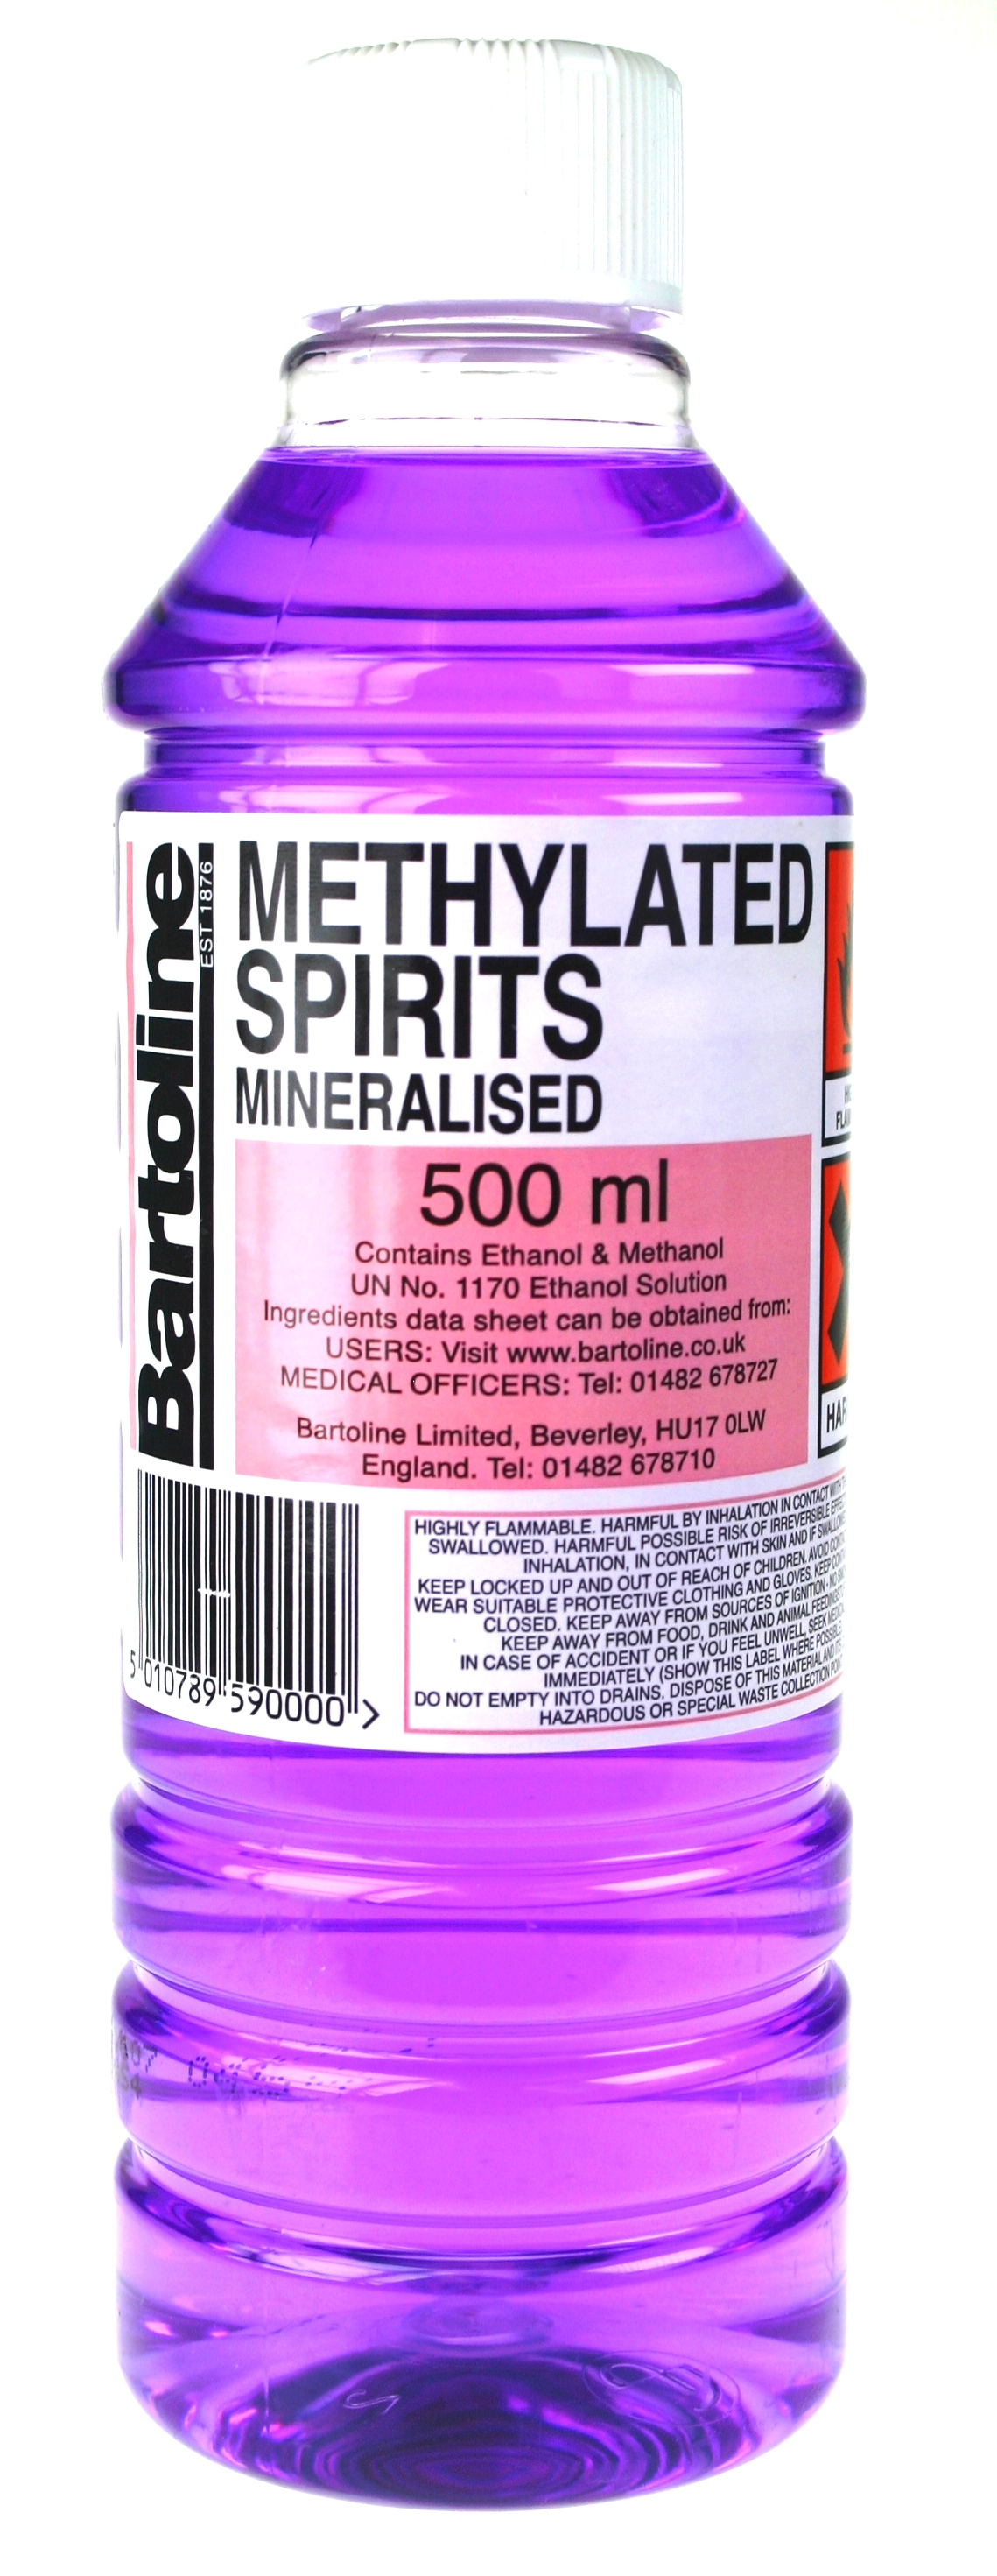 Methylated Spirits - Amy Mittelman